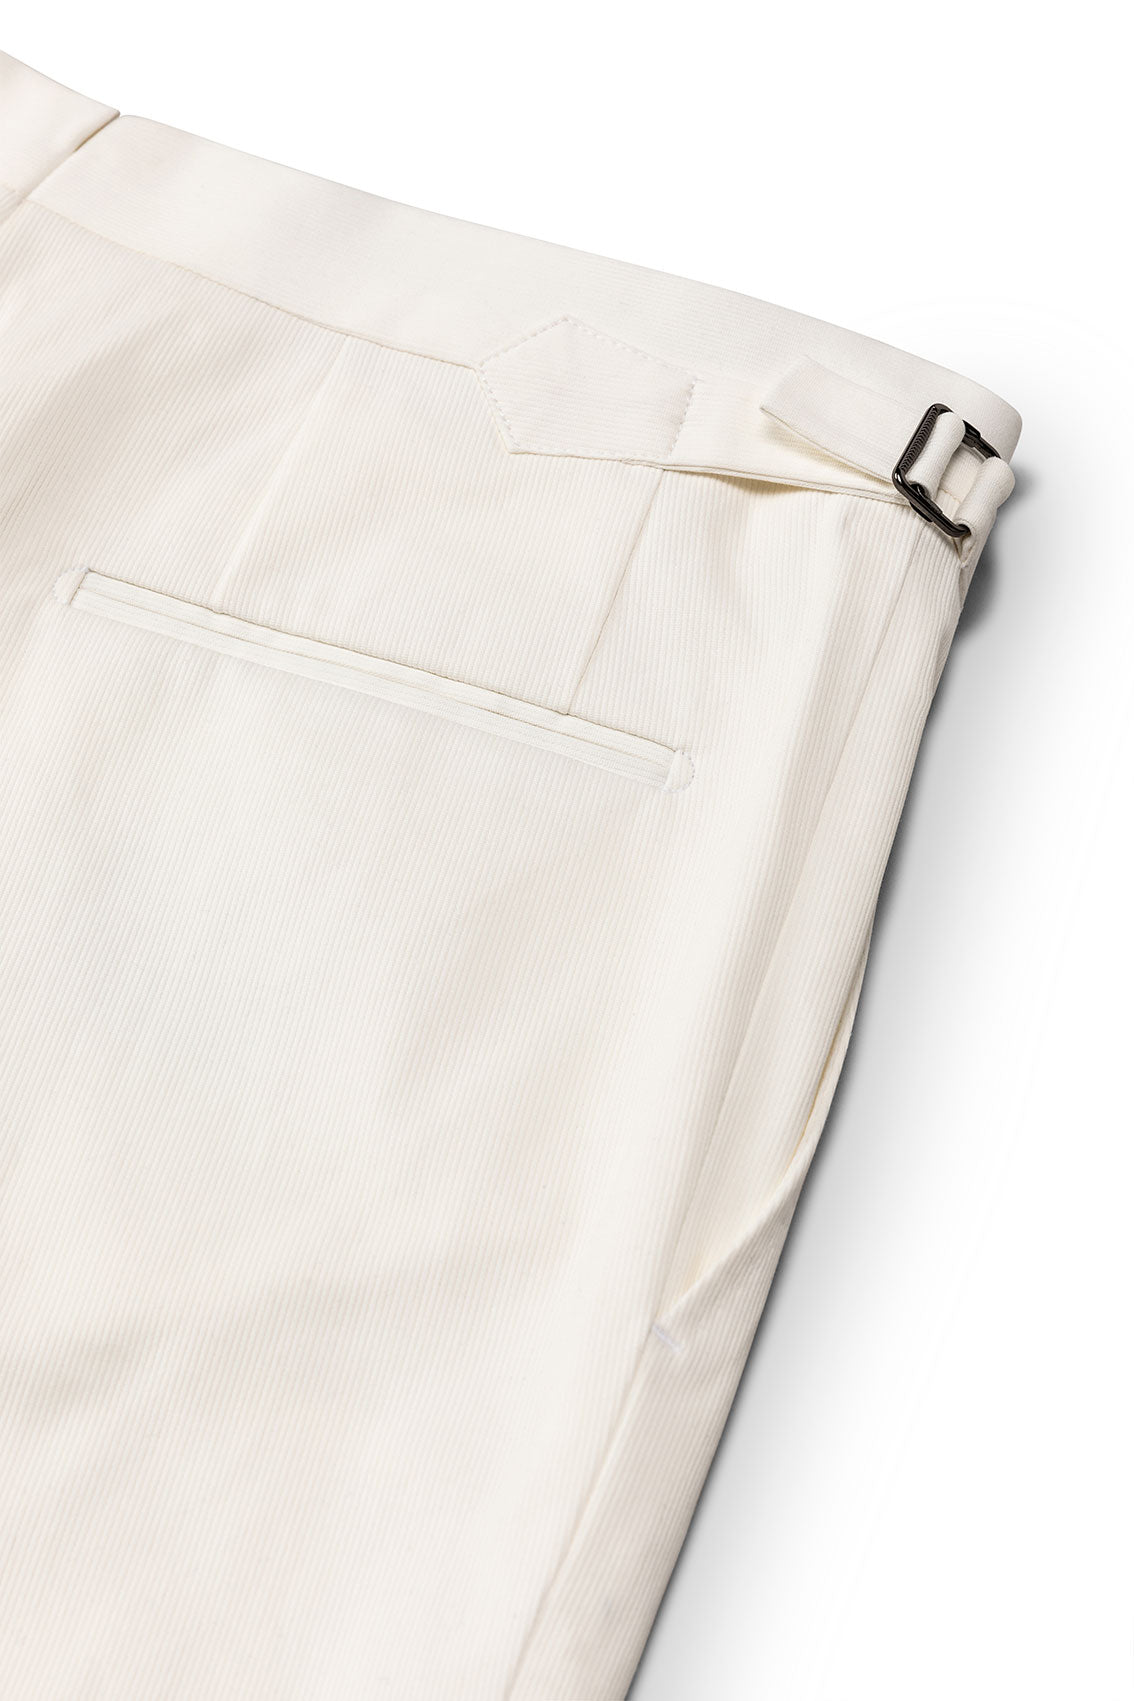 P Johnson White Pincord Tailored Trousers